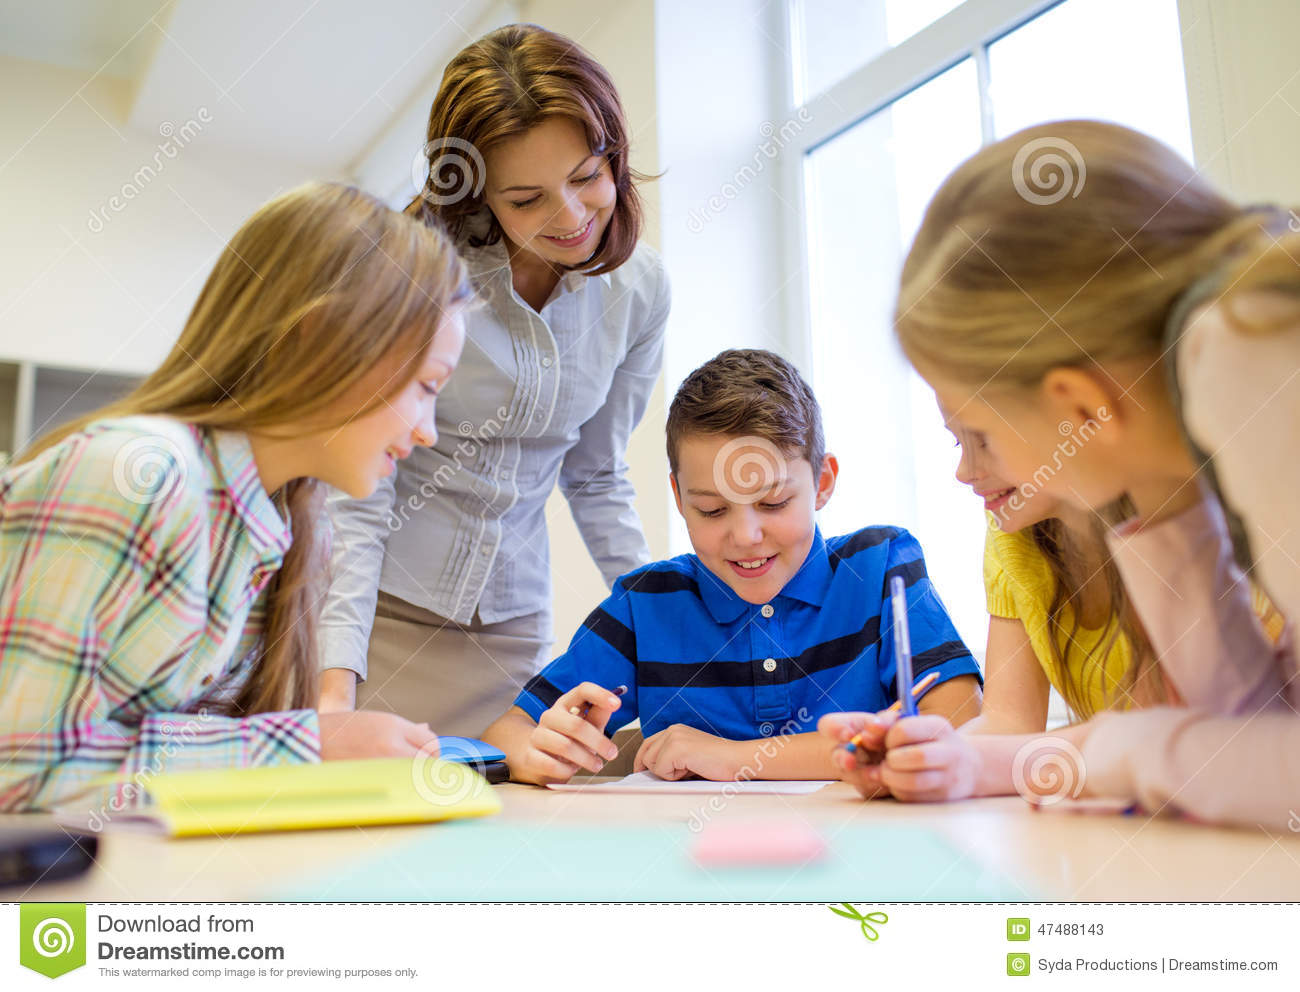 academic achievement of children and young people education essay Enjoy learning facts about nature, particularly about neurobiology (my  concentration)  the transition from home life to college can be a very difficult  one for young people i  that my interactions with the children were helpful to  them and perhaps may  additional experience that will help me achieve my  career coals.